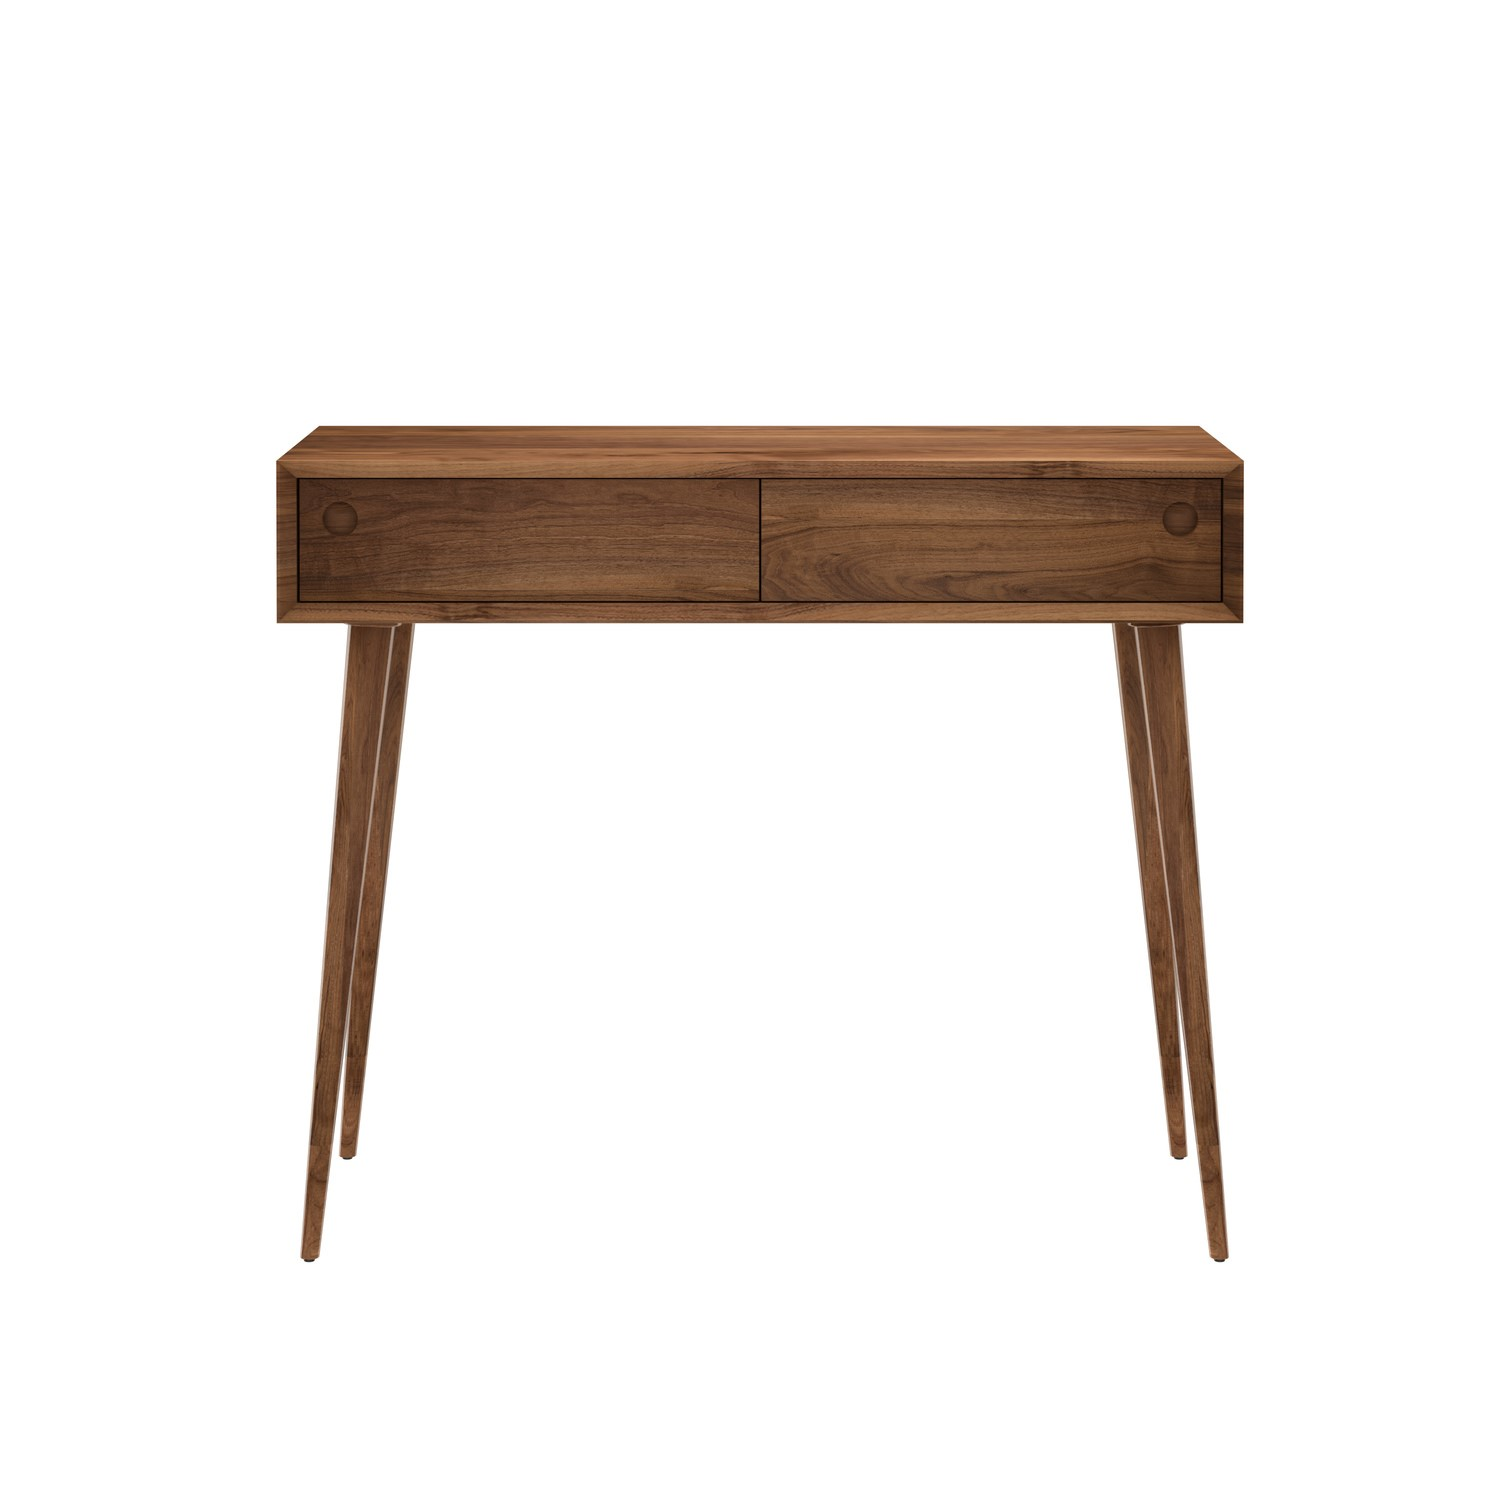 Walnut Office Desk With Drawers, Sofa Table Desk With Drawers